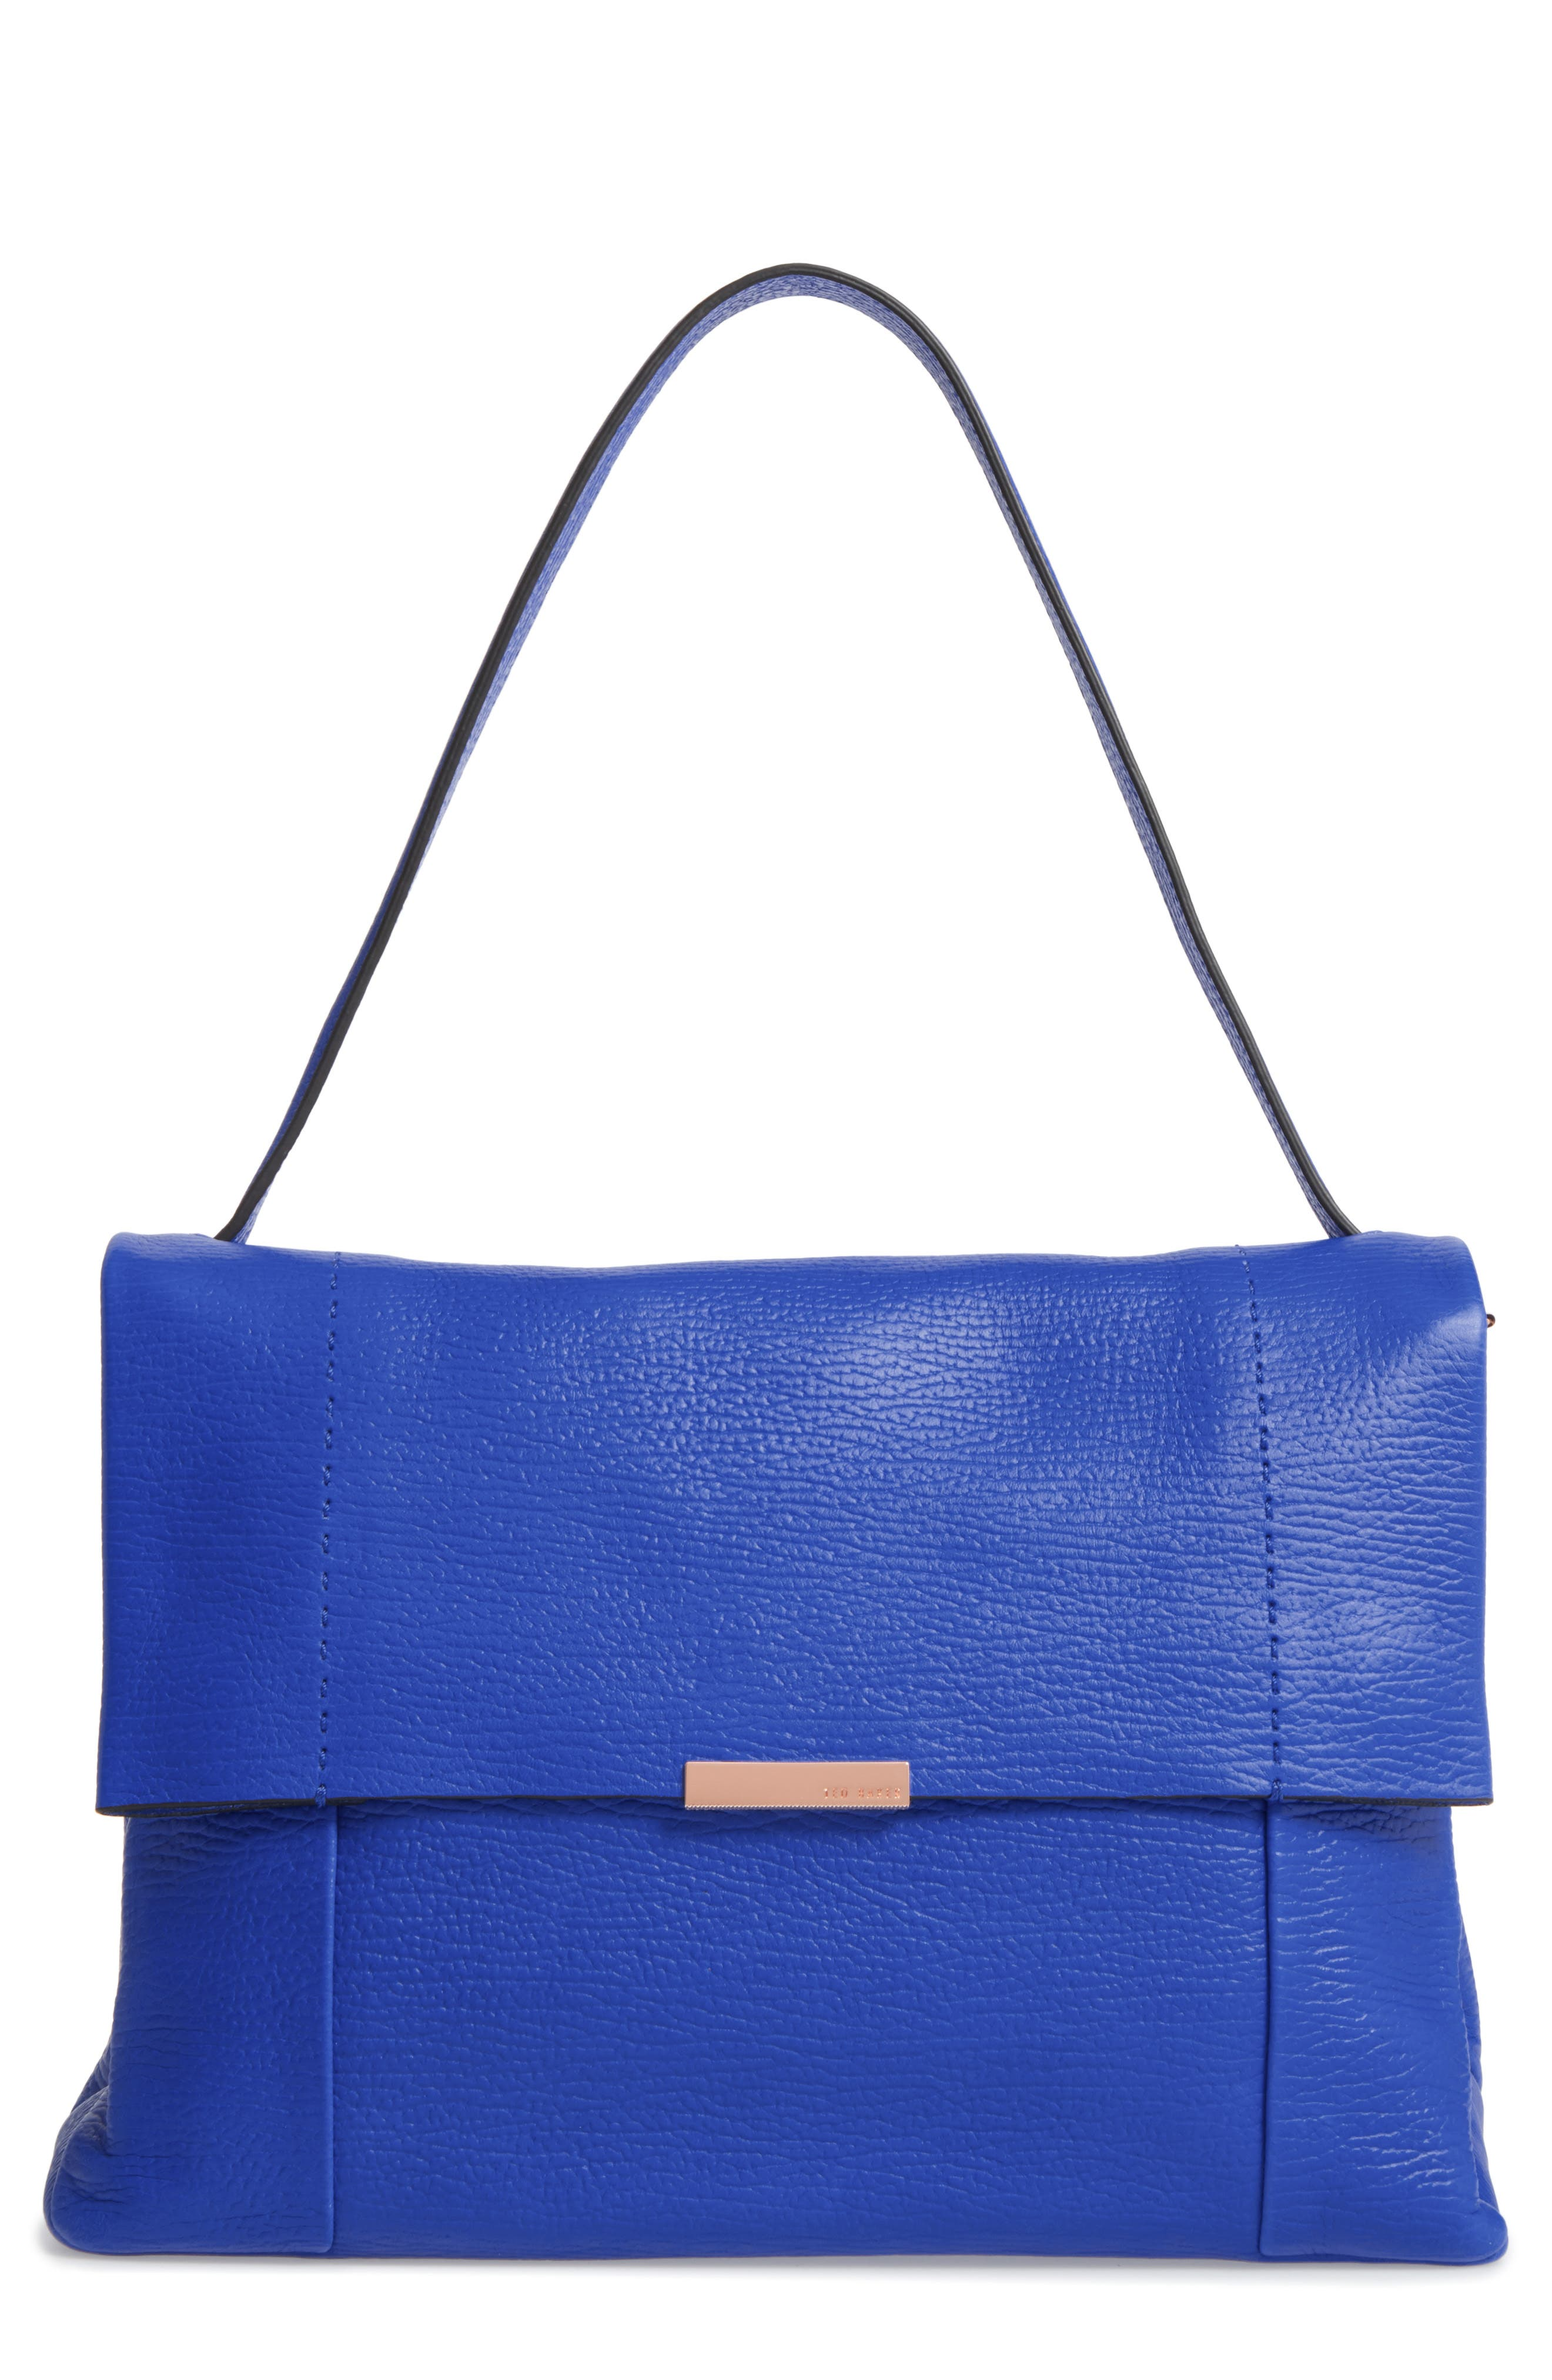 Alternate Image 1 Selected - Ted Baker London Proter Leather Shoulder Bag